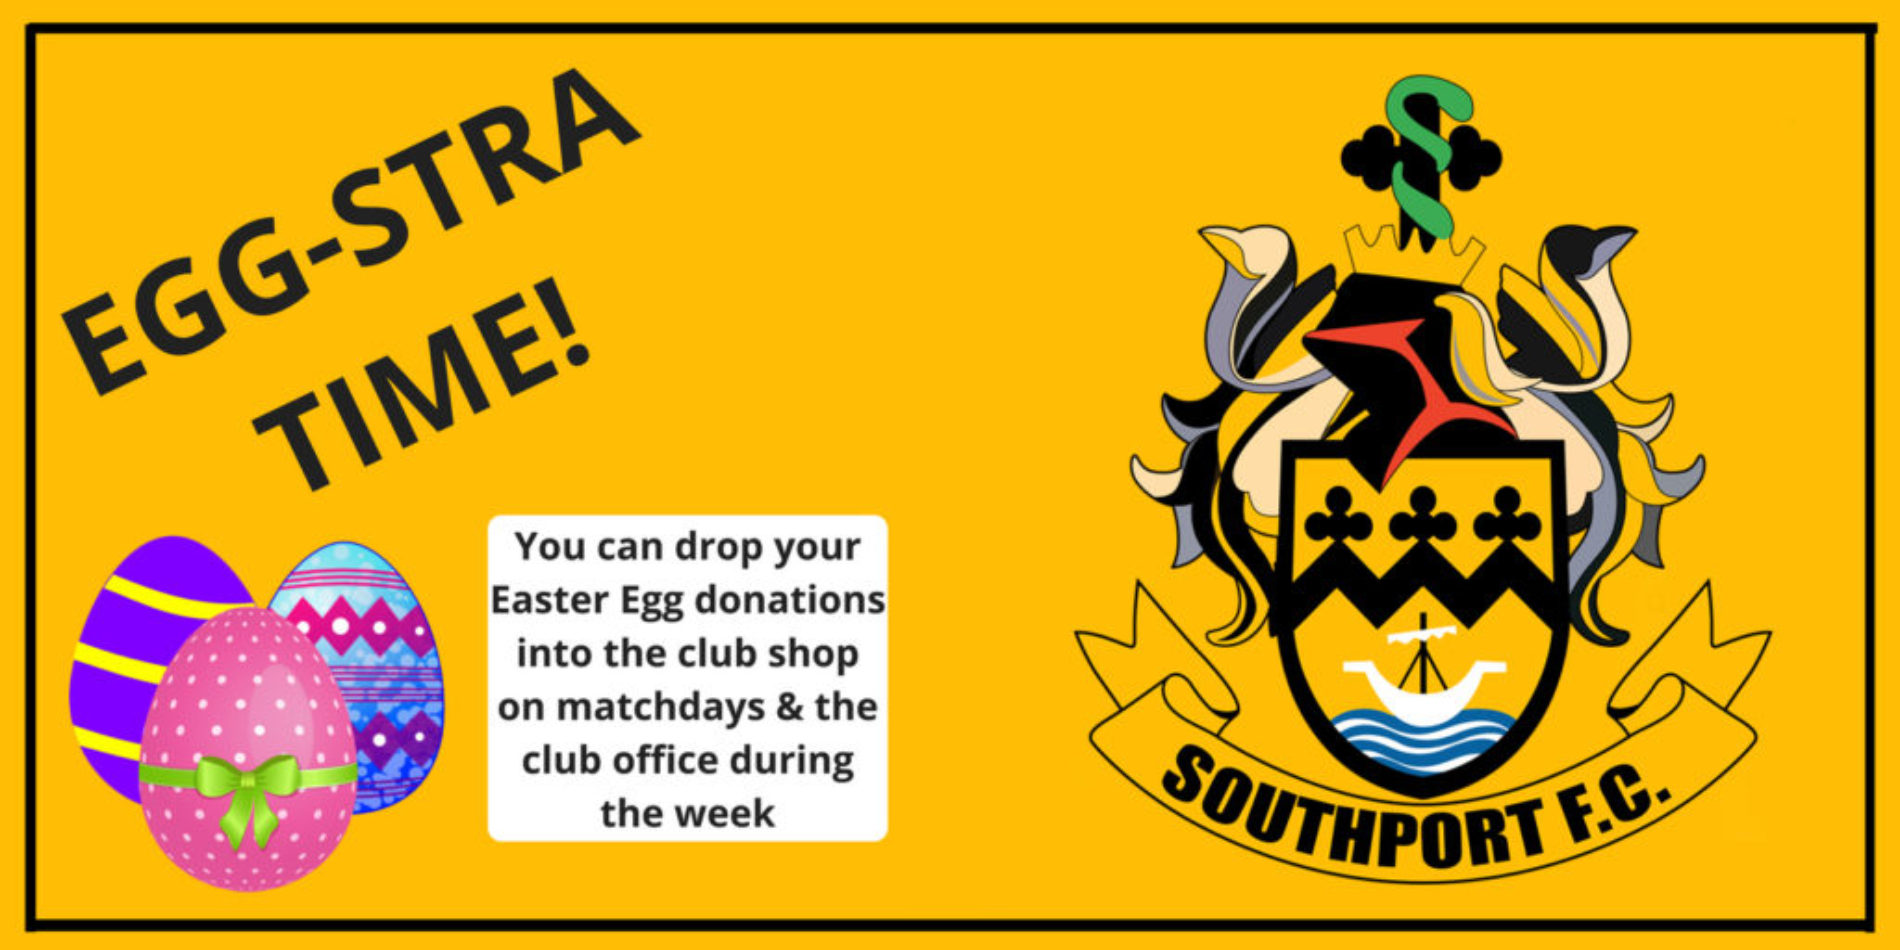 Egg-Stra Time! Club Seeks Easter Egg Donations For Southport Families